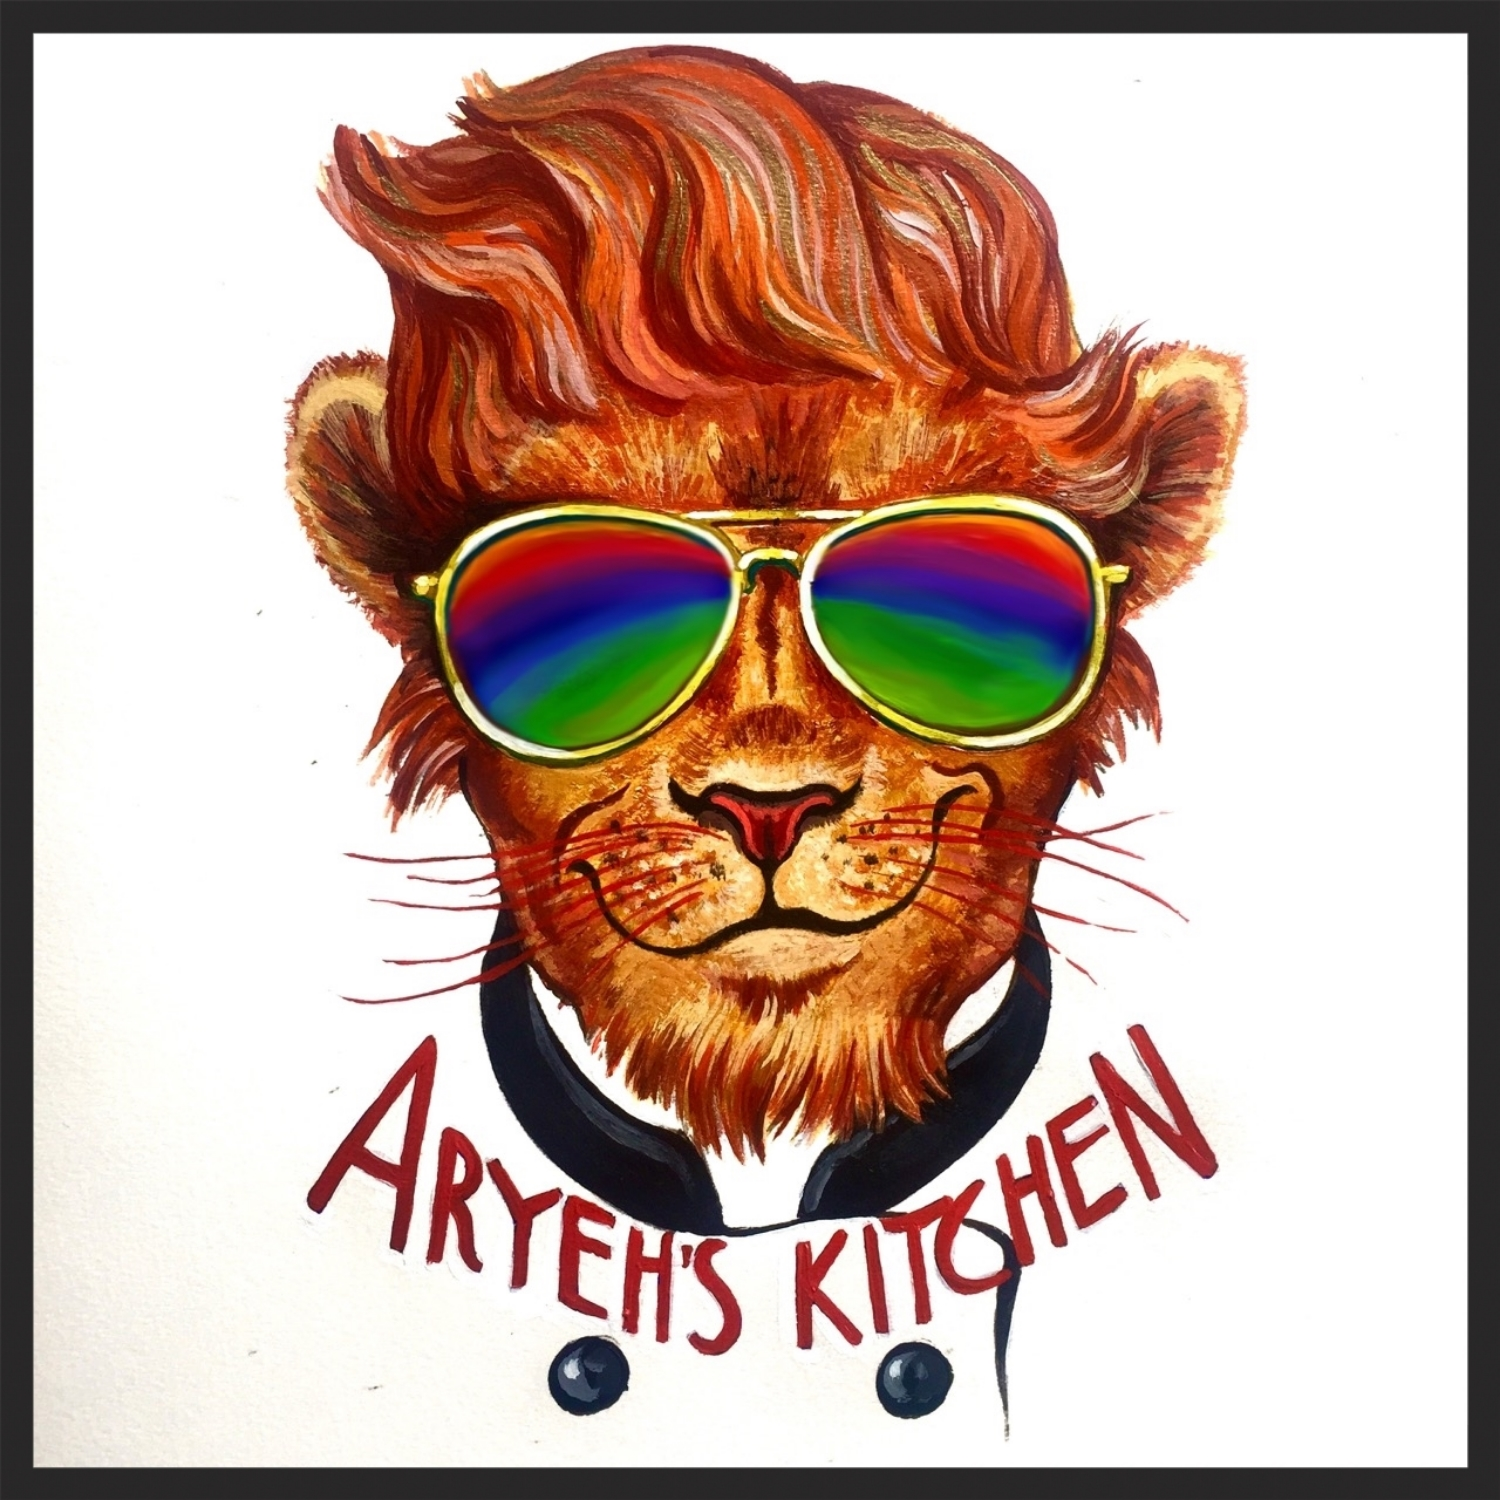 Aryeh's Kitchen